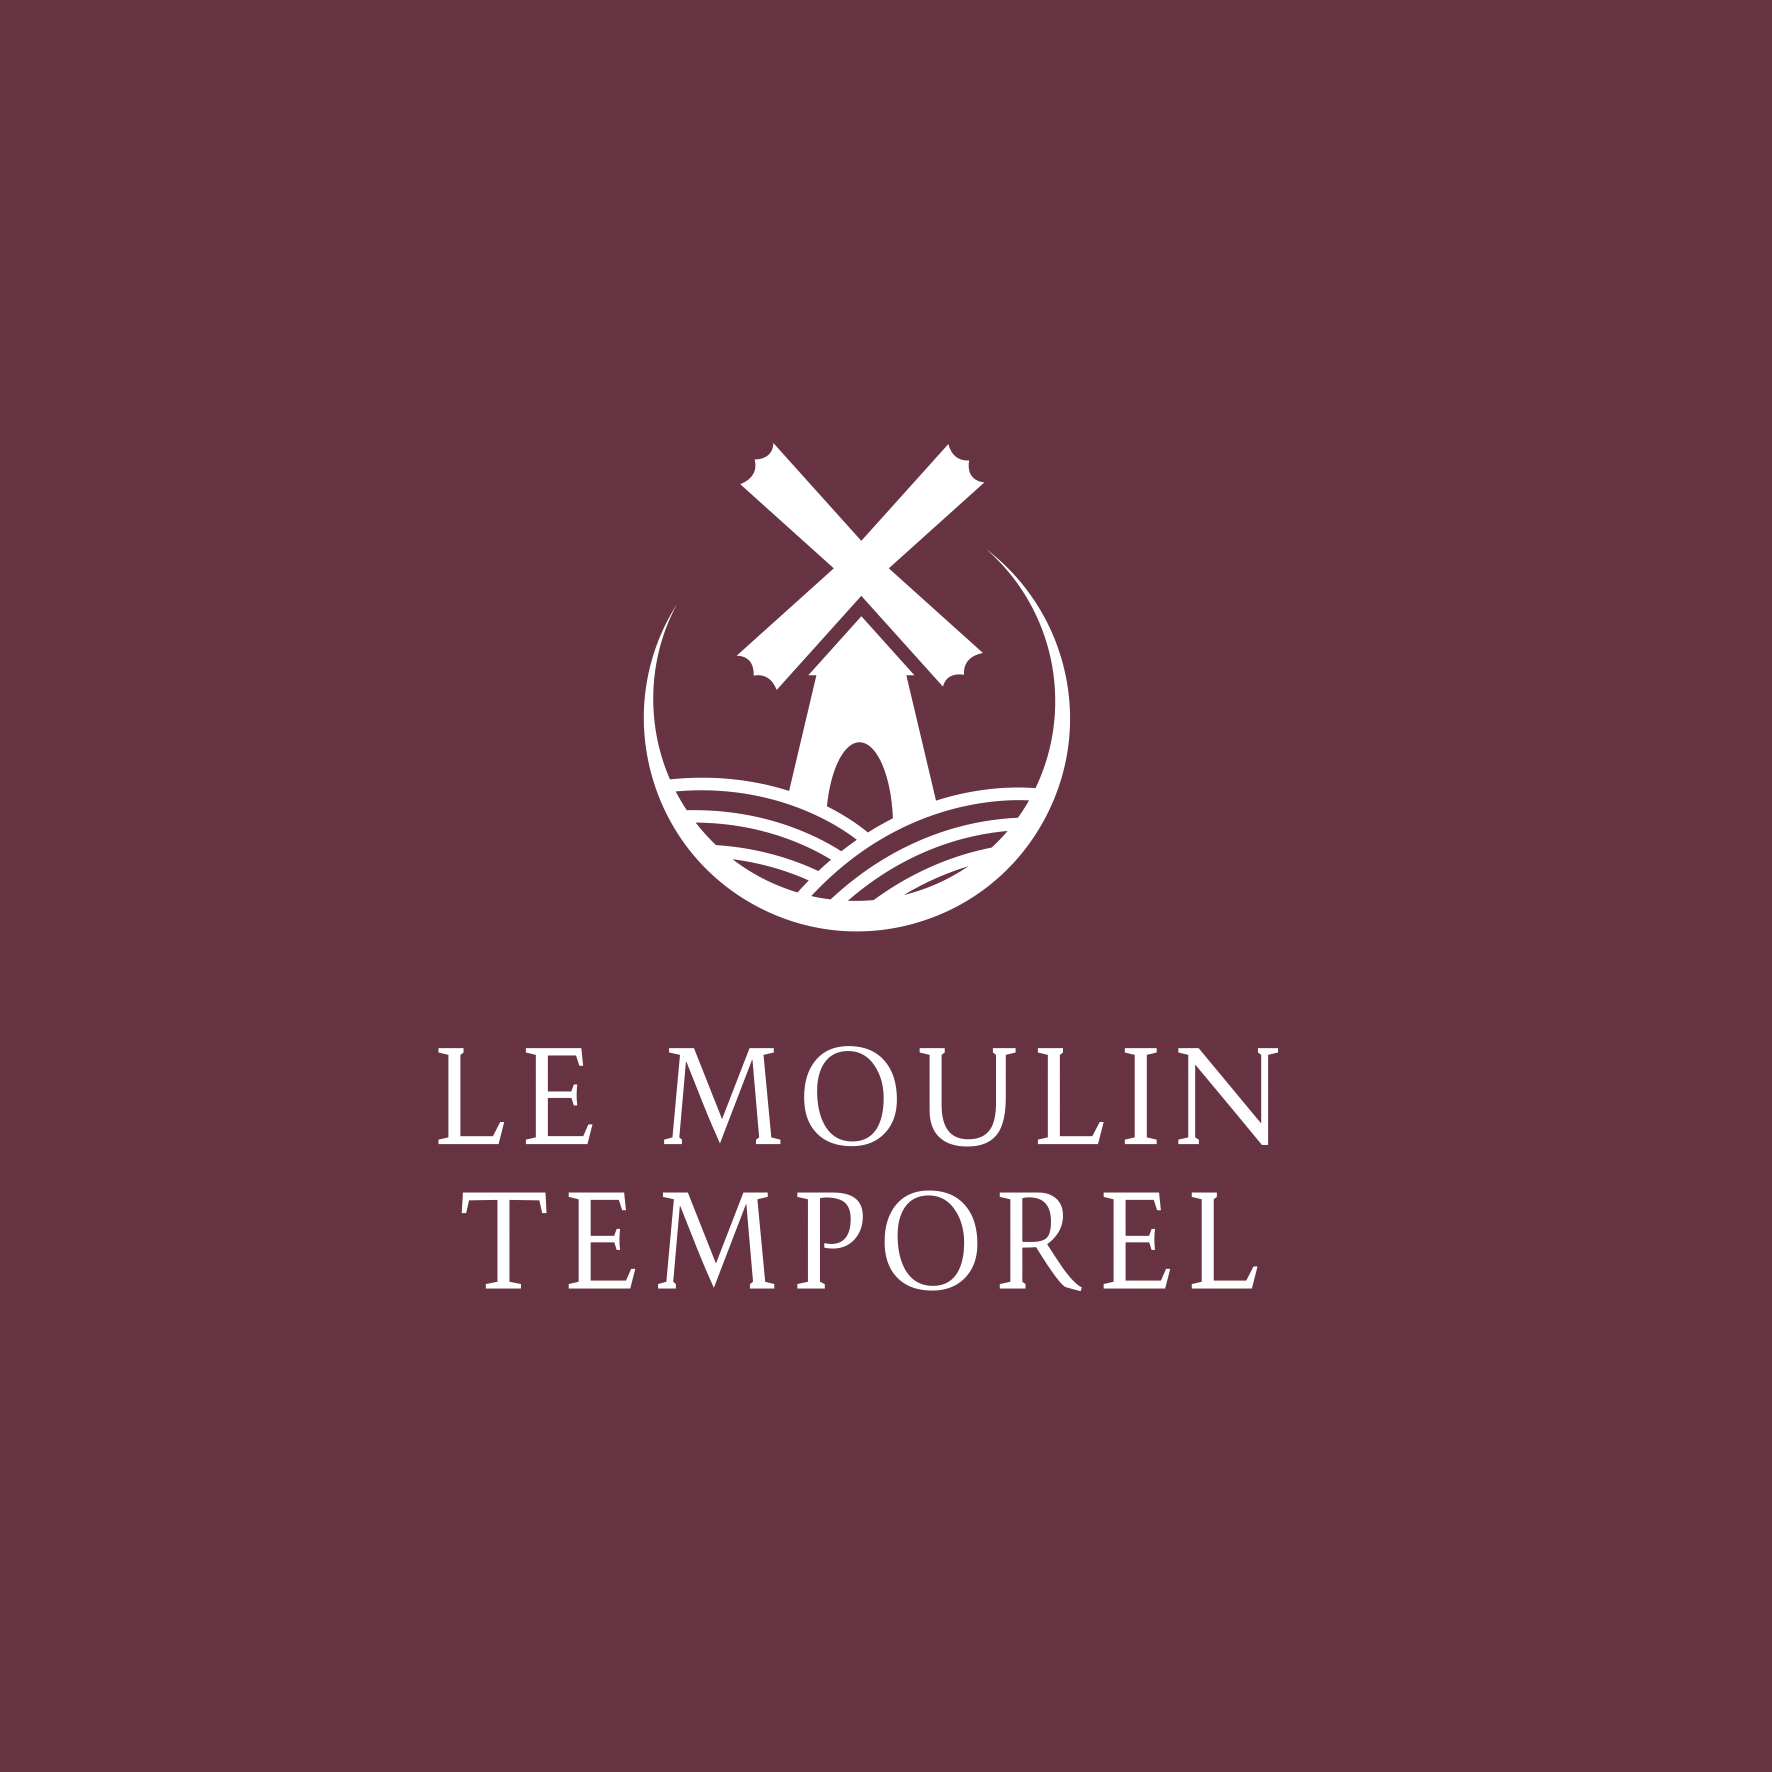 le moulin temporel / Épi Hotel